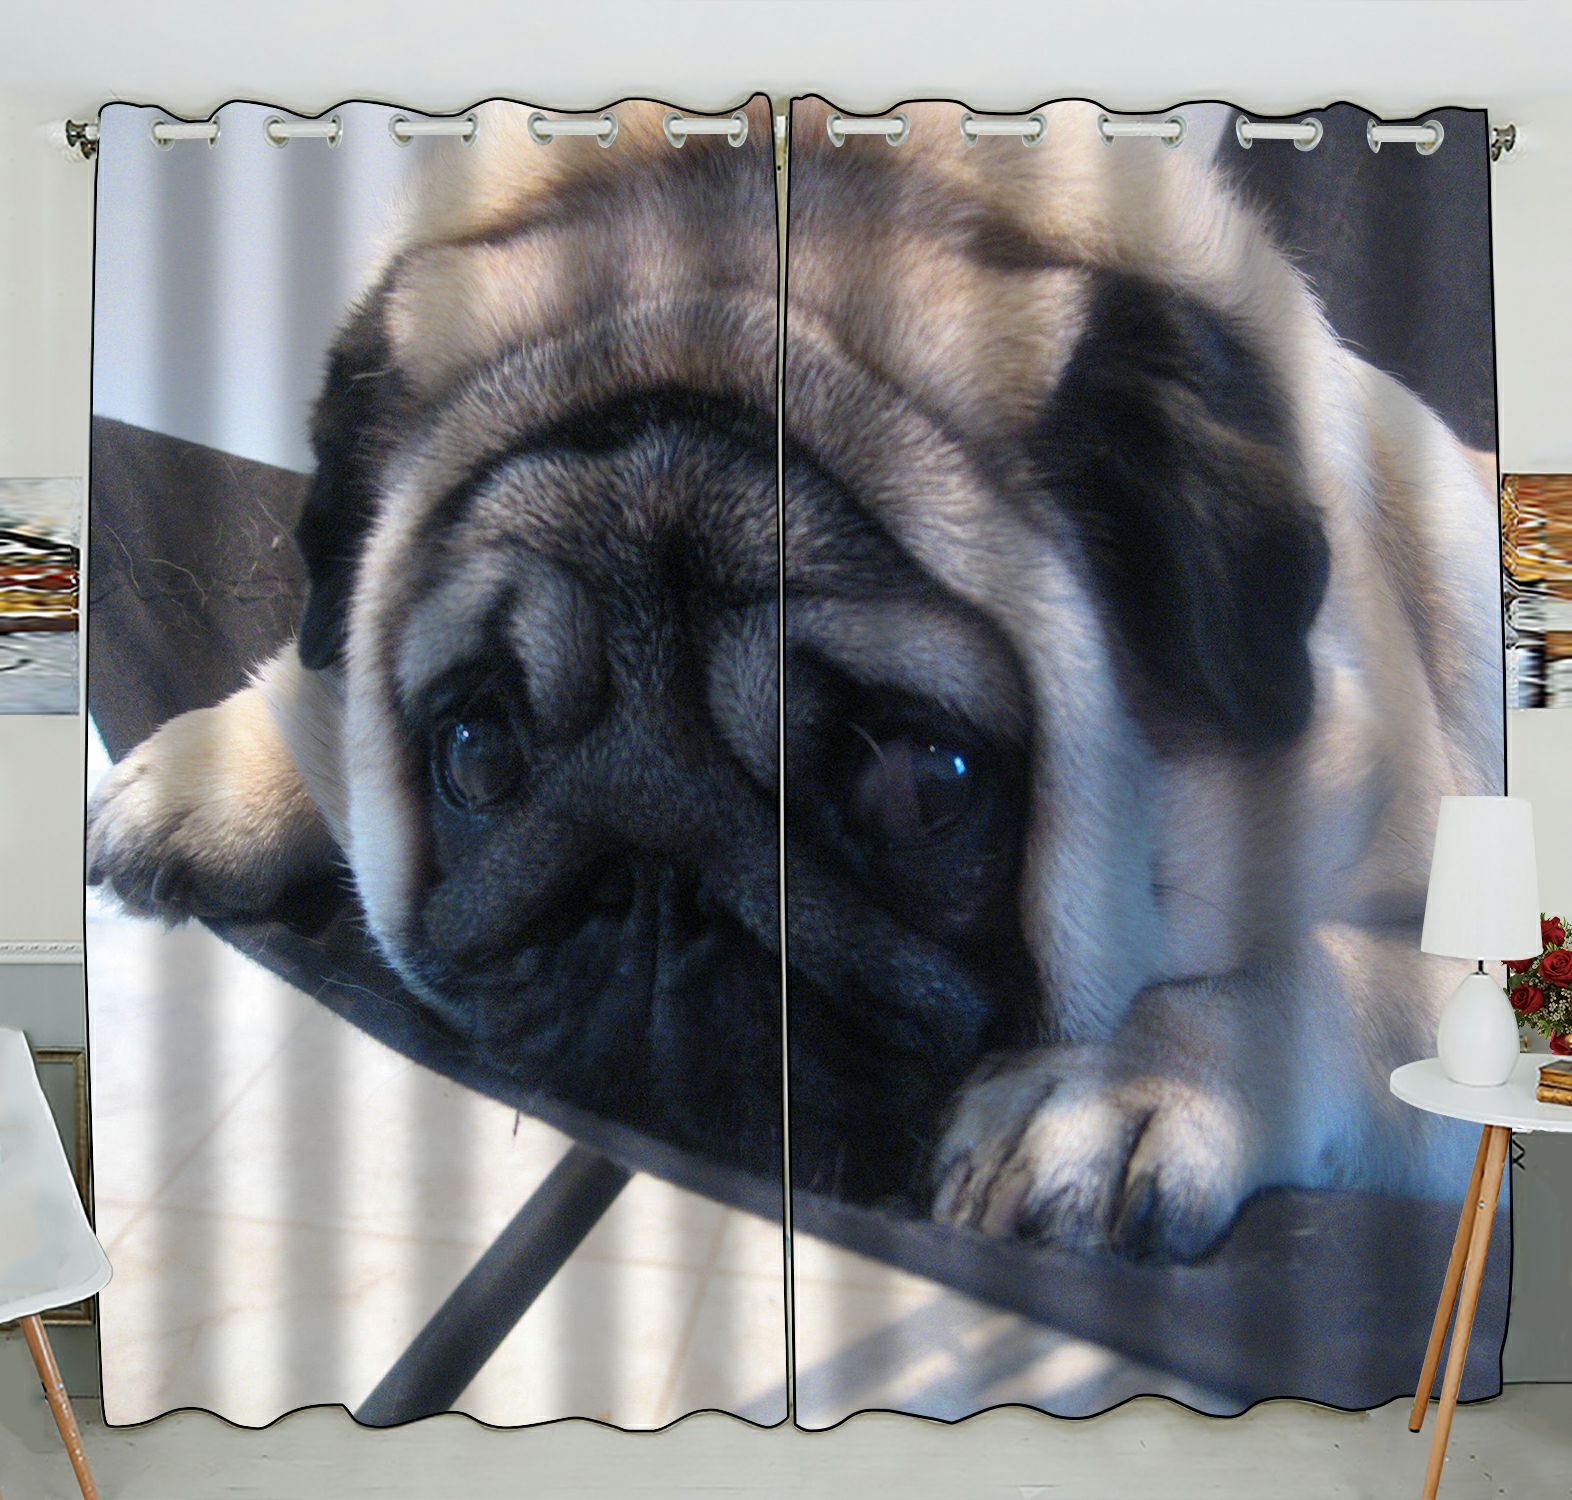 ZKGK Pug Puppy Window Curtain Drapery/Panels/Treatment For Living Room Bedroom Kids Rooms 52x84 inches Two Panel